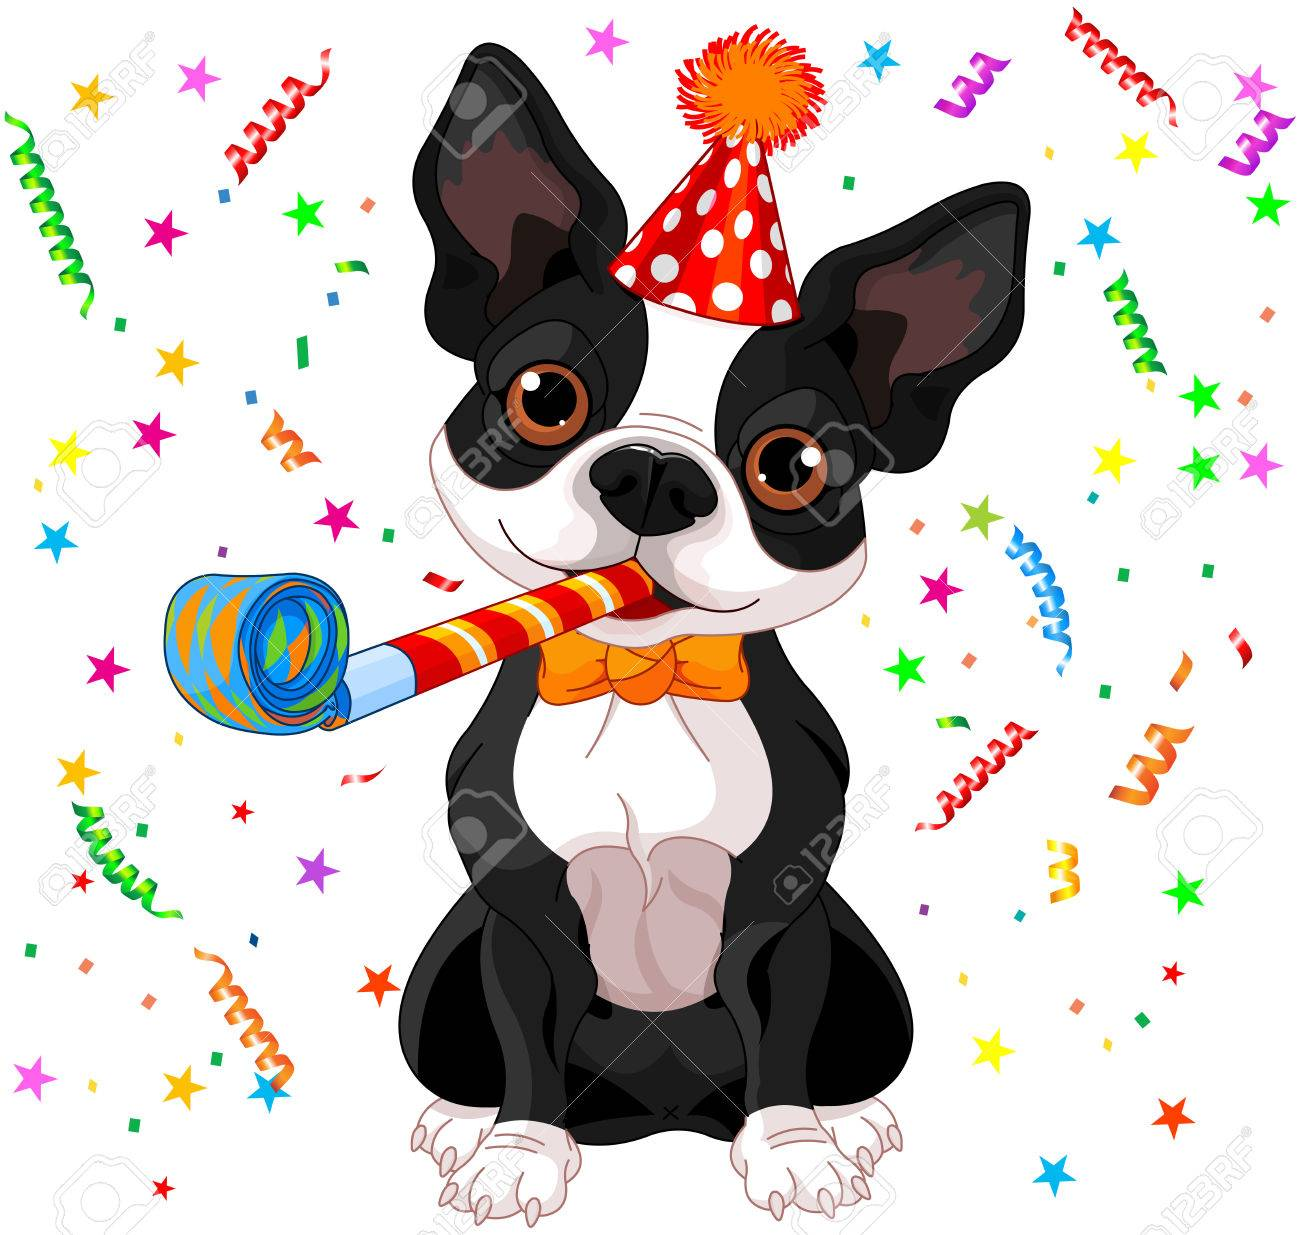 Travailler/obéir pour faire plaisir au maître ou le Will to Please 35588778-illustration-of-cute-boston-terrier-celebrating